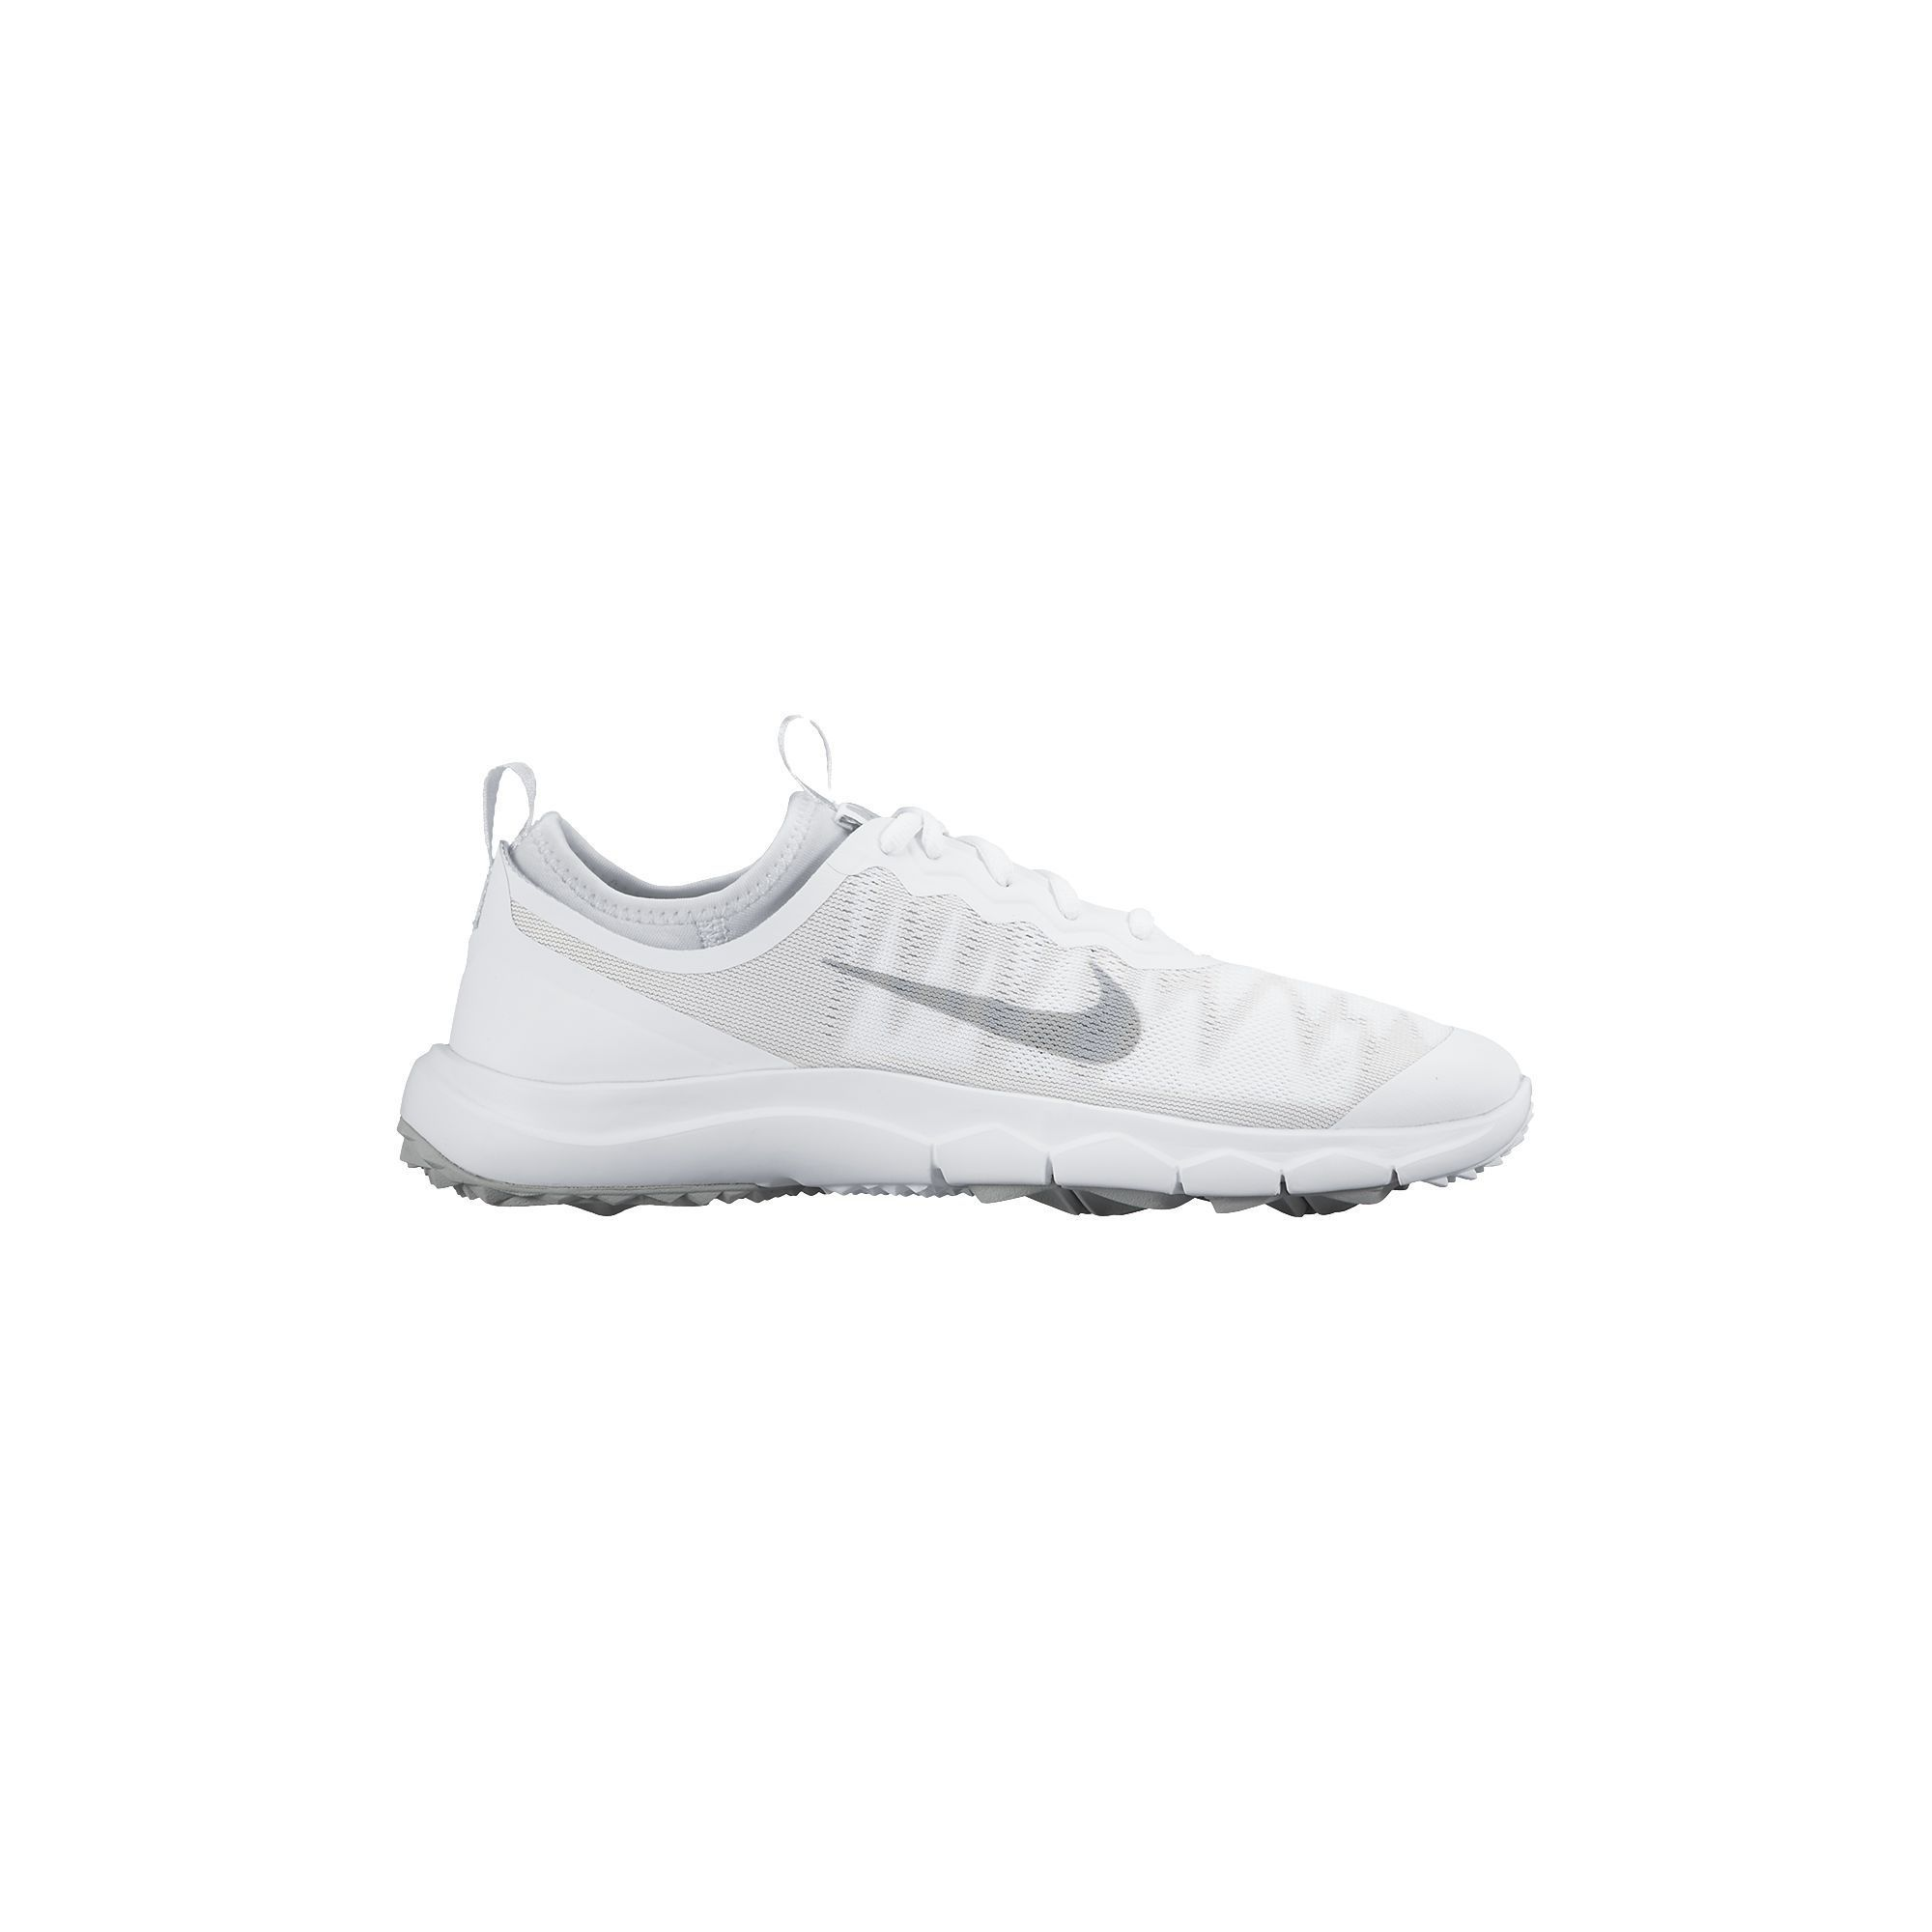 quality design 8ff82 183b2 The Nike FI Bermuda Women's Golf Shoe is designed for stability and a  locked-in